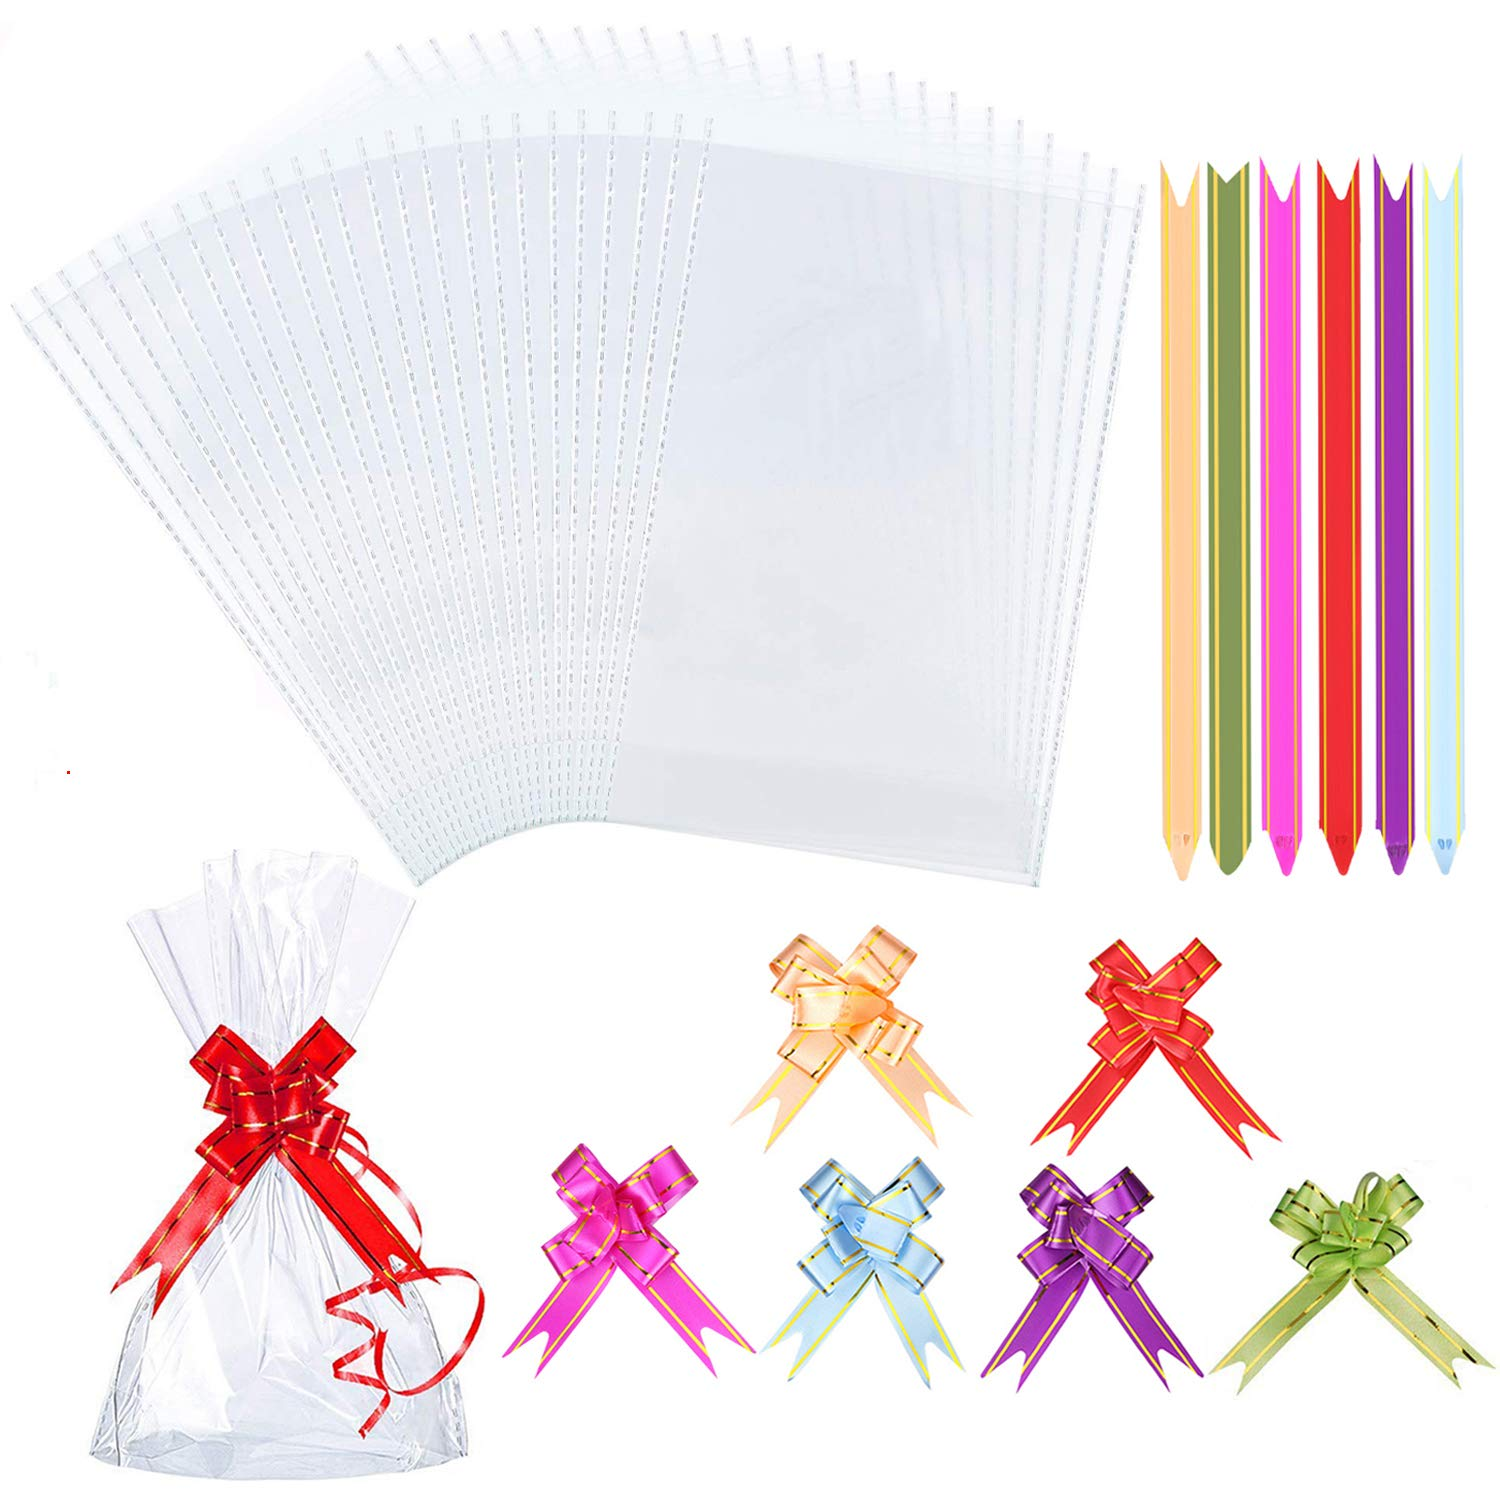 AUERVO 120PCS Clear Cellophane Treat Bags, Clear Resealable Flat Cello Bags OPP Plastic Bag Cellophane Storage Bags Sweet/Party/Gift/Home Bags with 120PCS Mix Colors Pull Bows